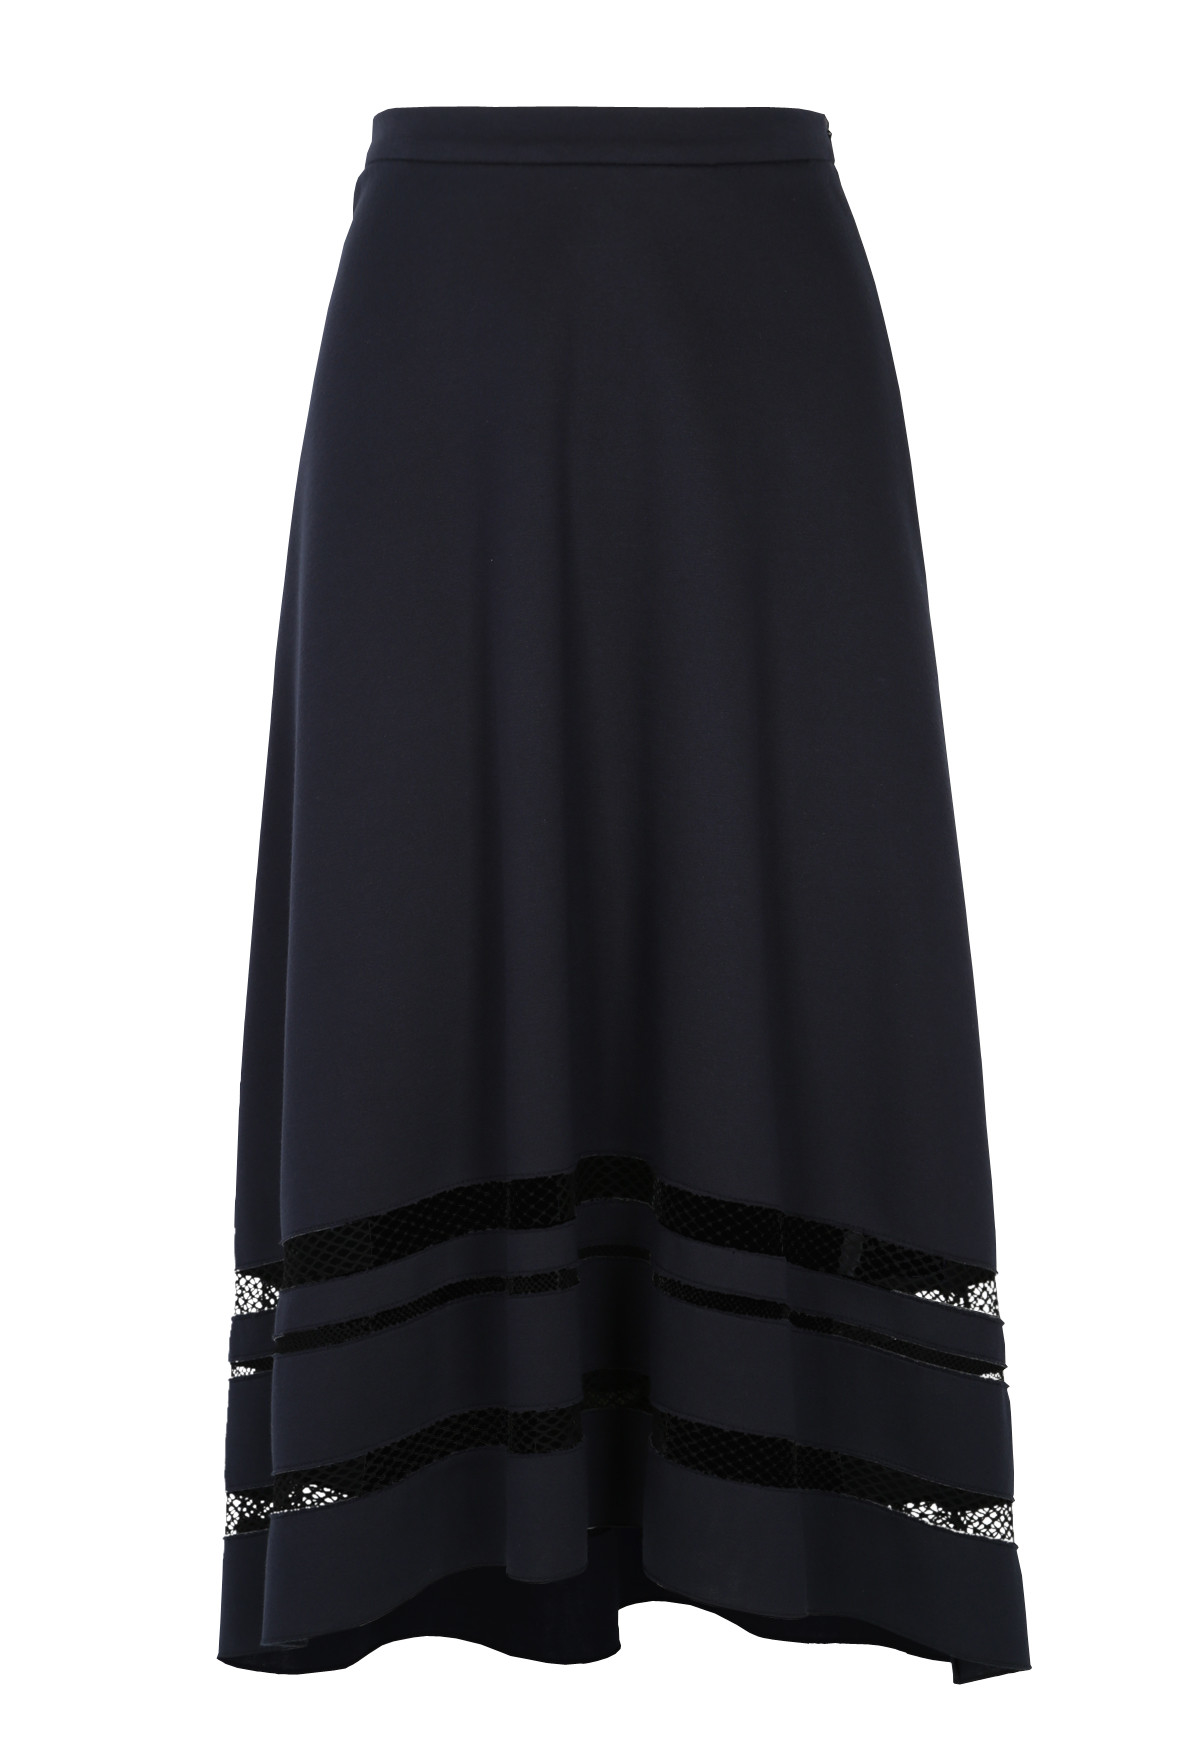 VIBRANT LIGHTNESS skirt 3 Dorothee Schumacher Low Price Fee Shipping Sale Online New Arrival Cheap Price New Styles Cheap Online With Mastercard Cheap Online Order Cheap Online rdKotx3N